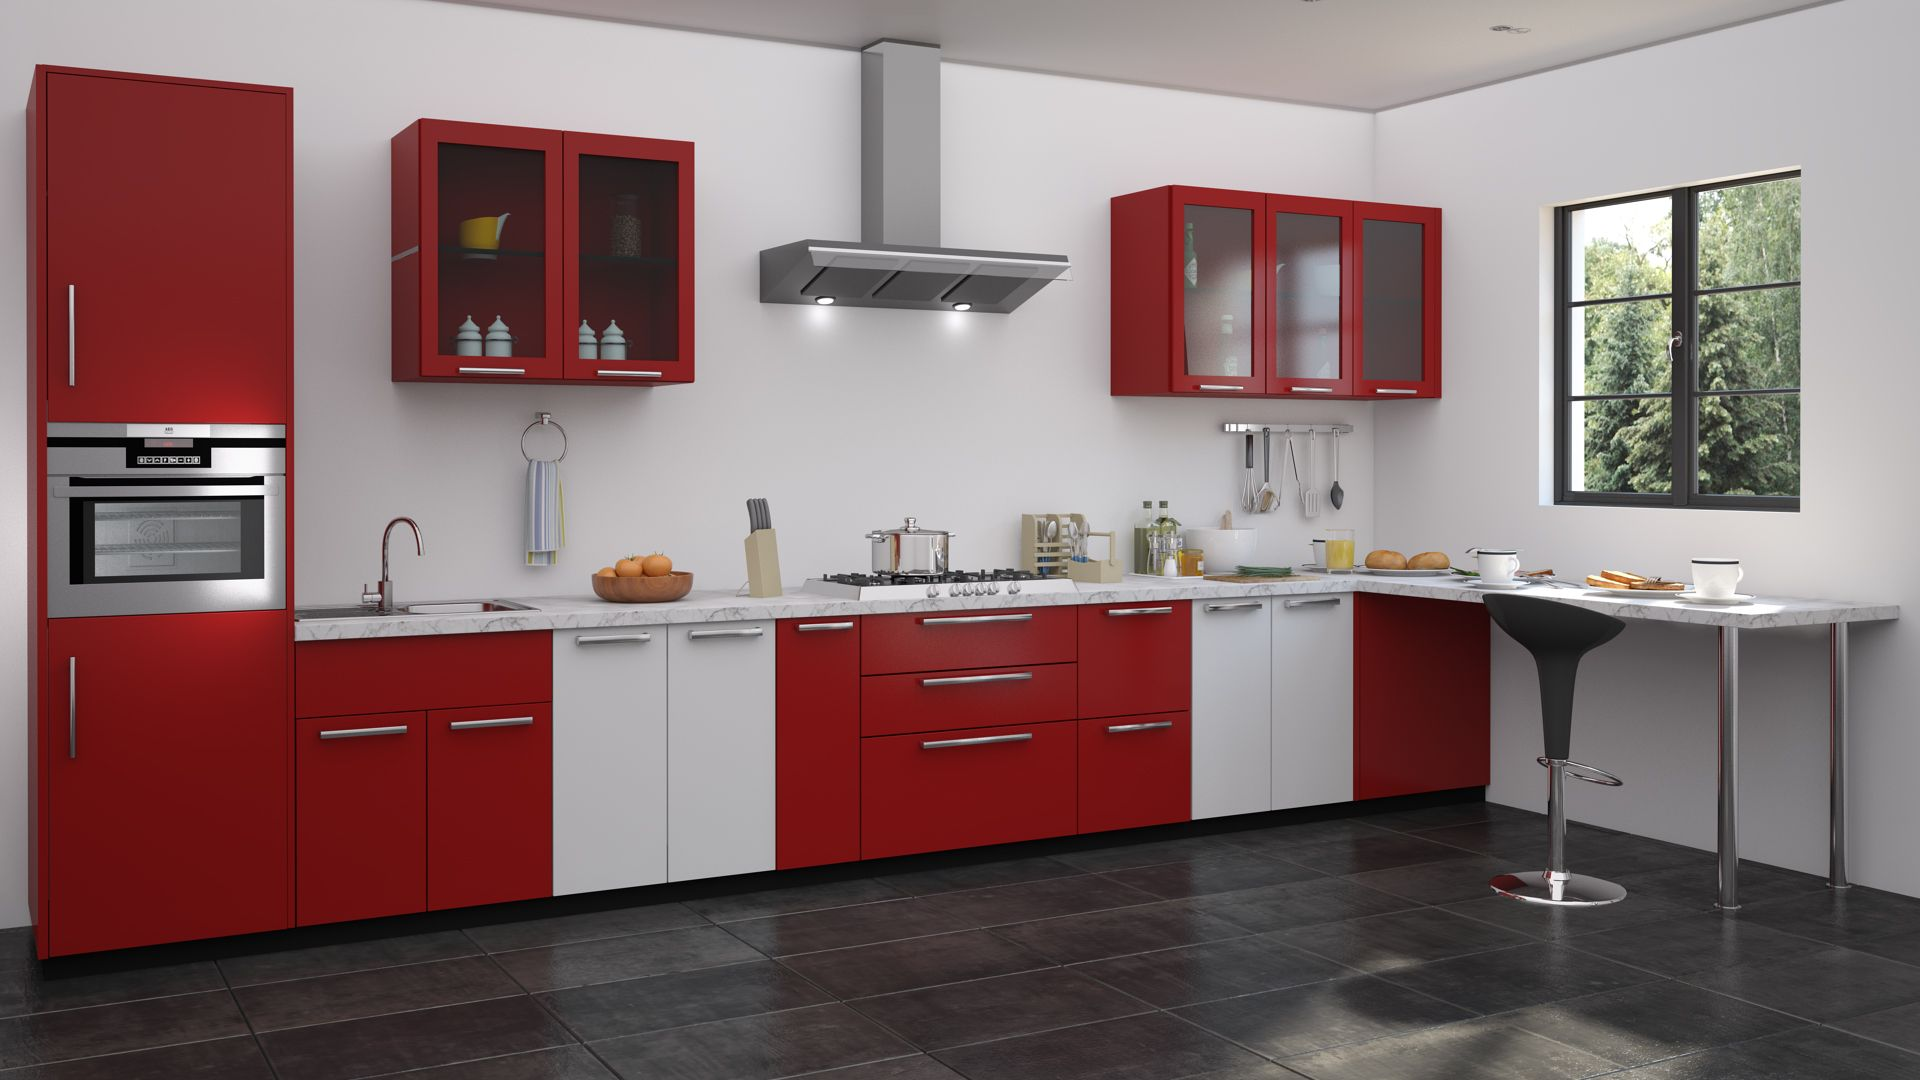 red and white kitchen designs straight kitchen designs red and white kitchen designs